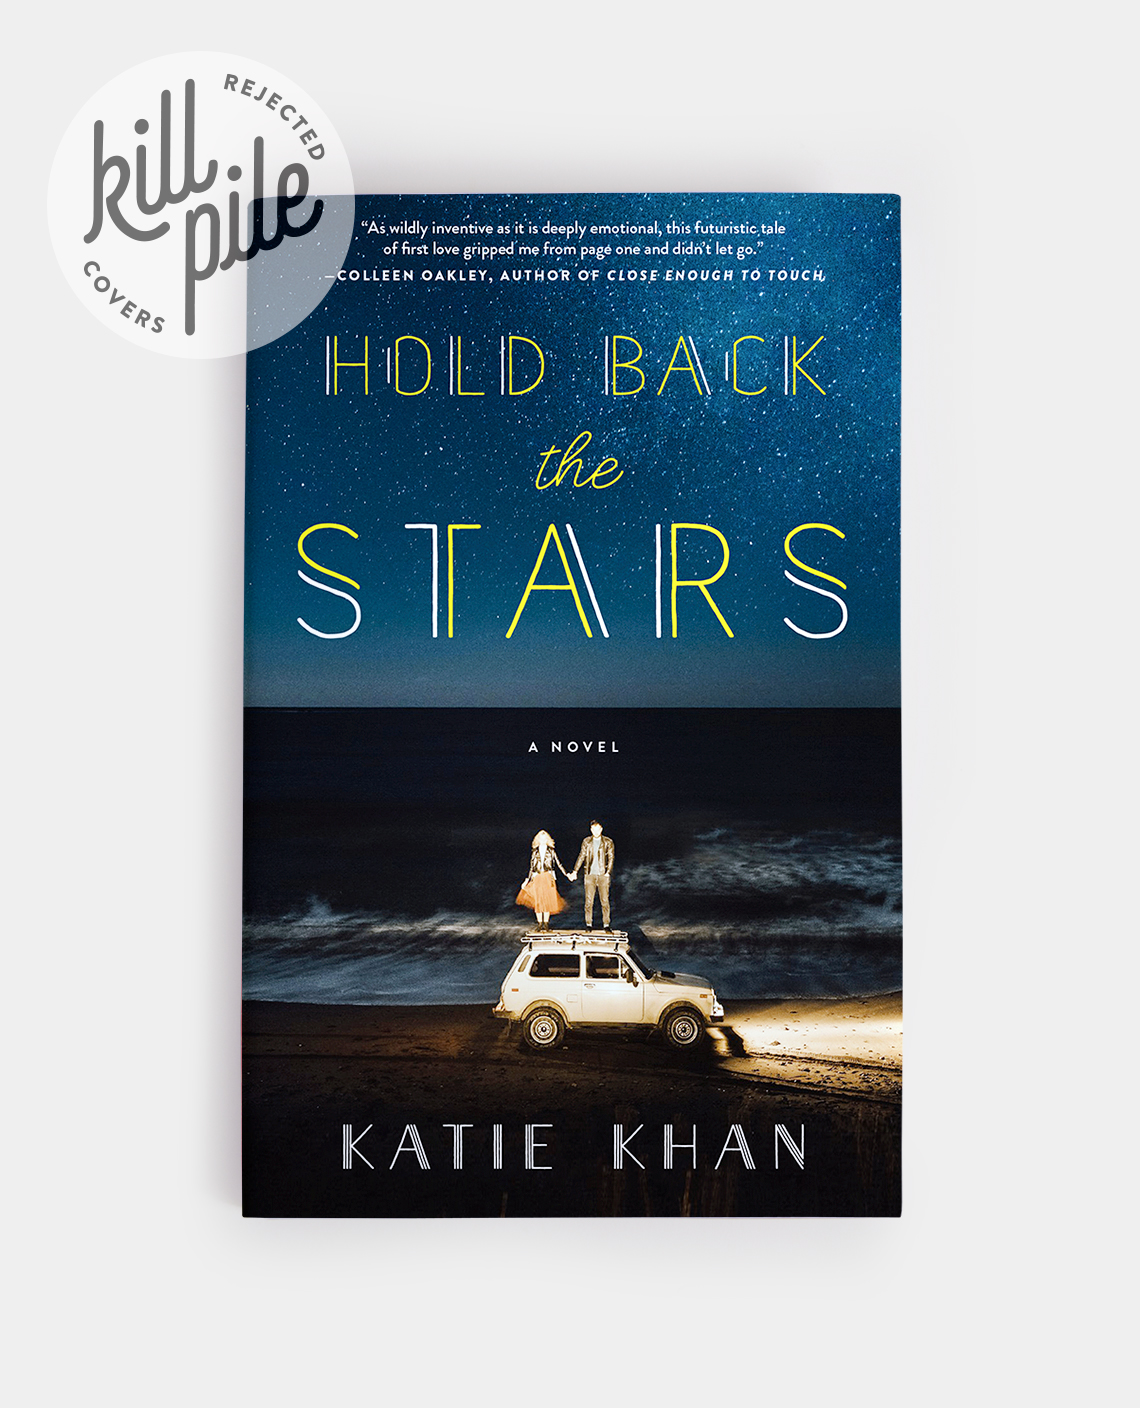 Hold Back the Stars - annadorfman.com